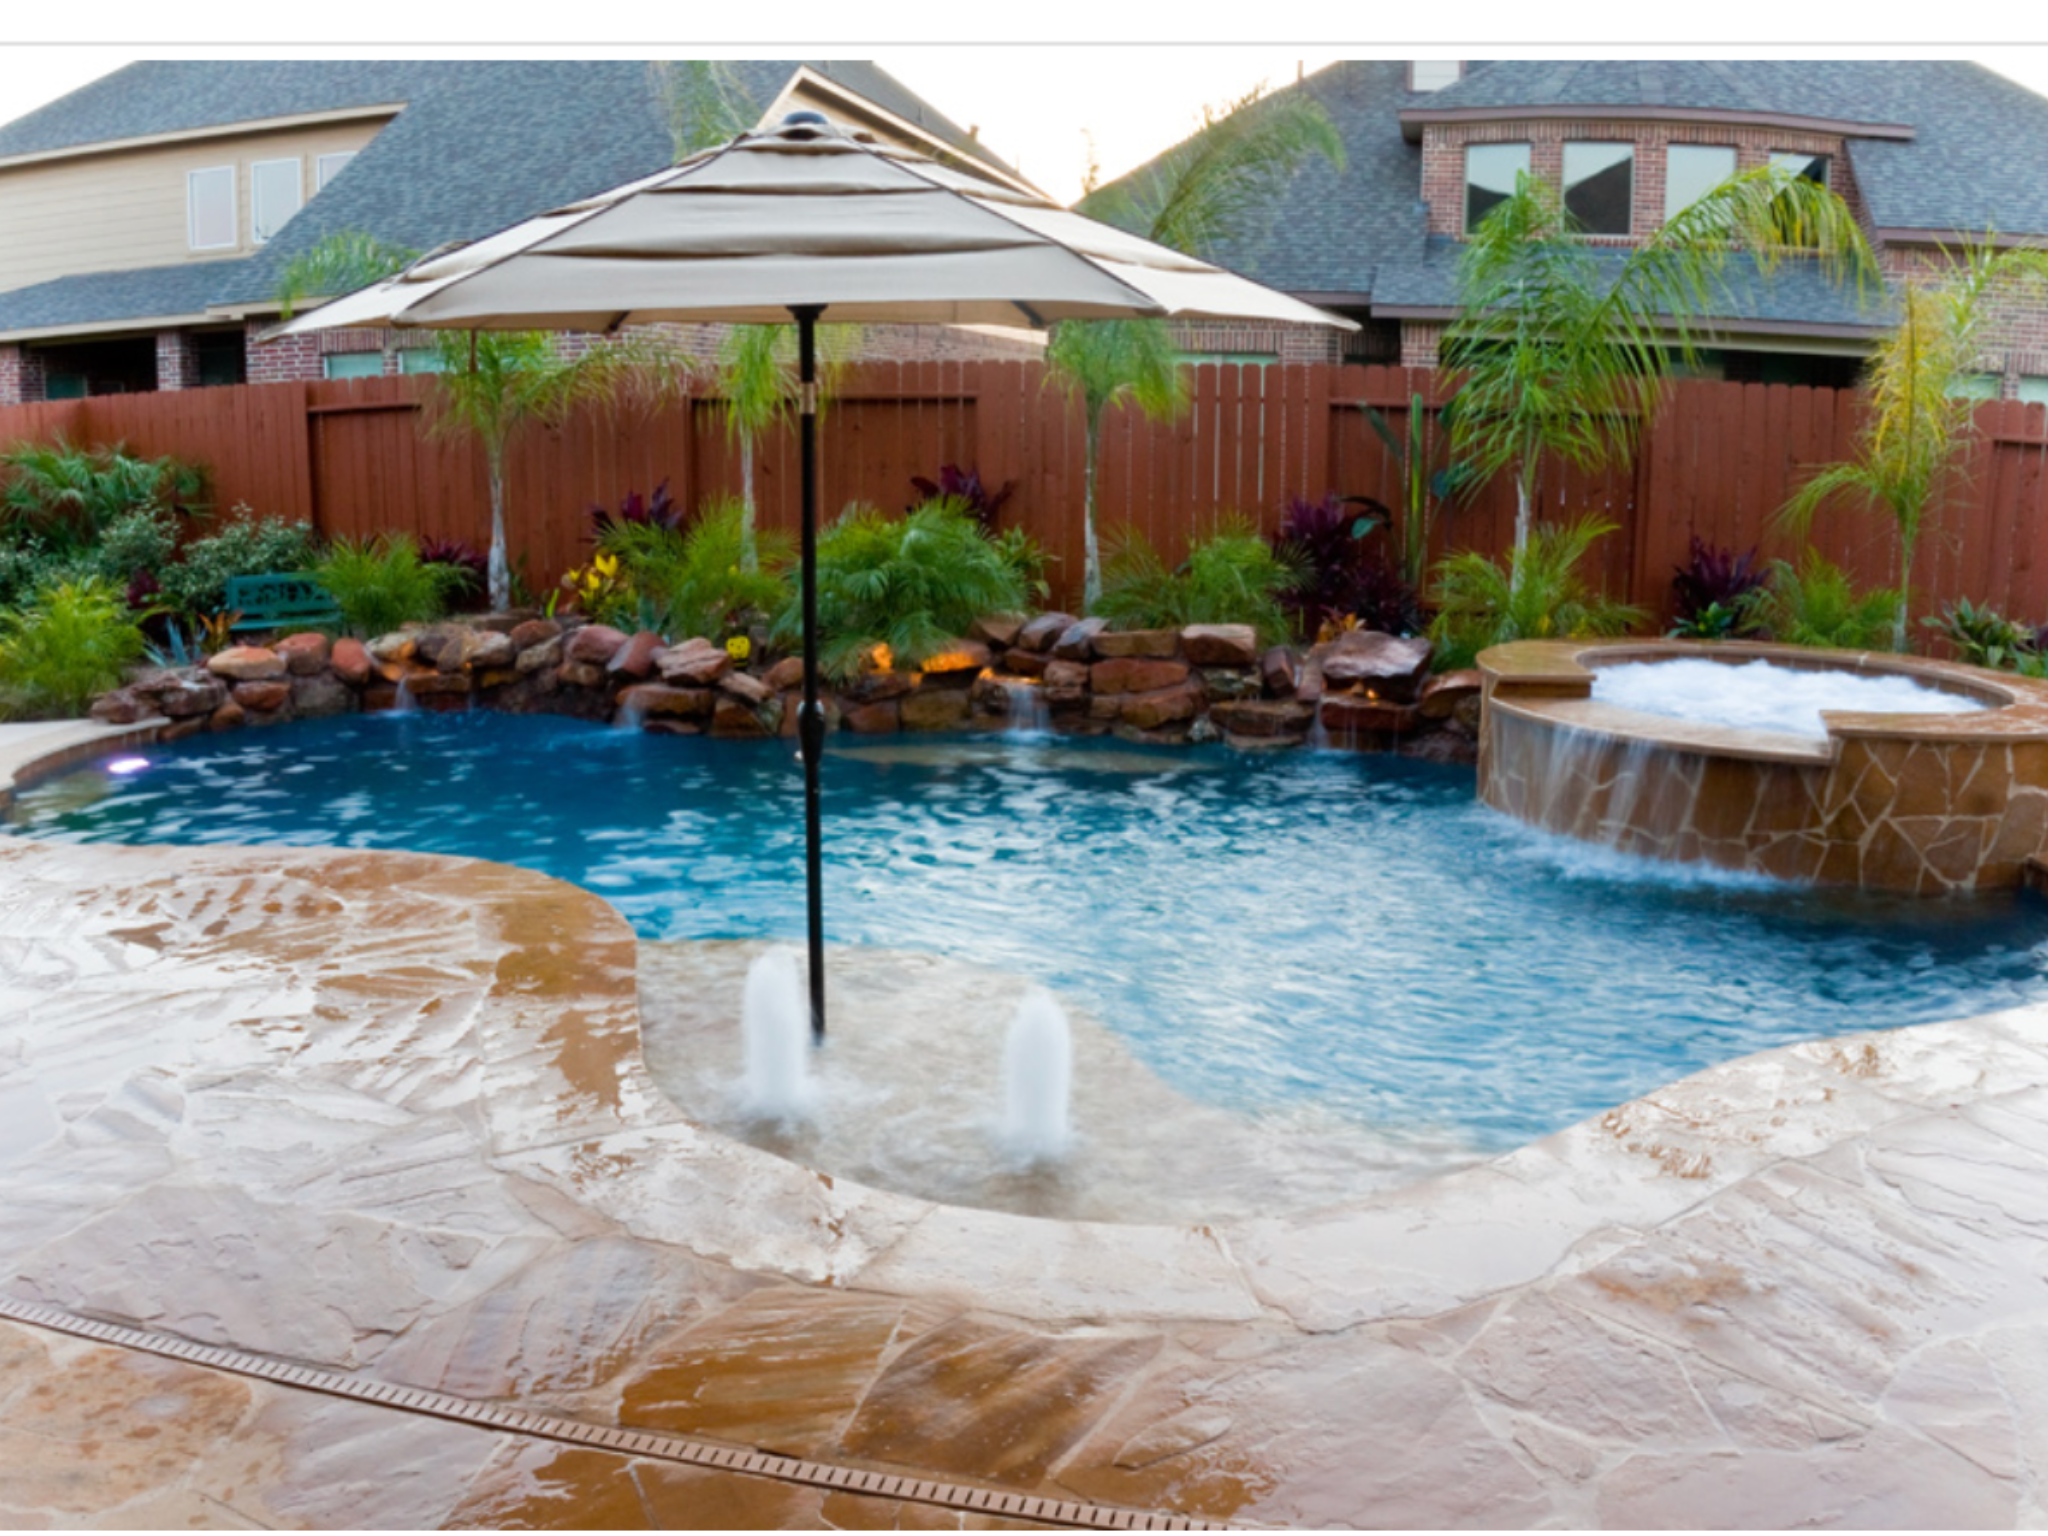 Pin by Cheri VM on Pool Party in 2019   Pool designs ...